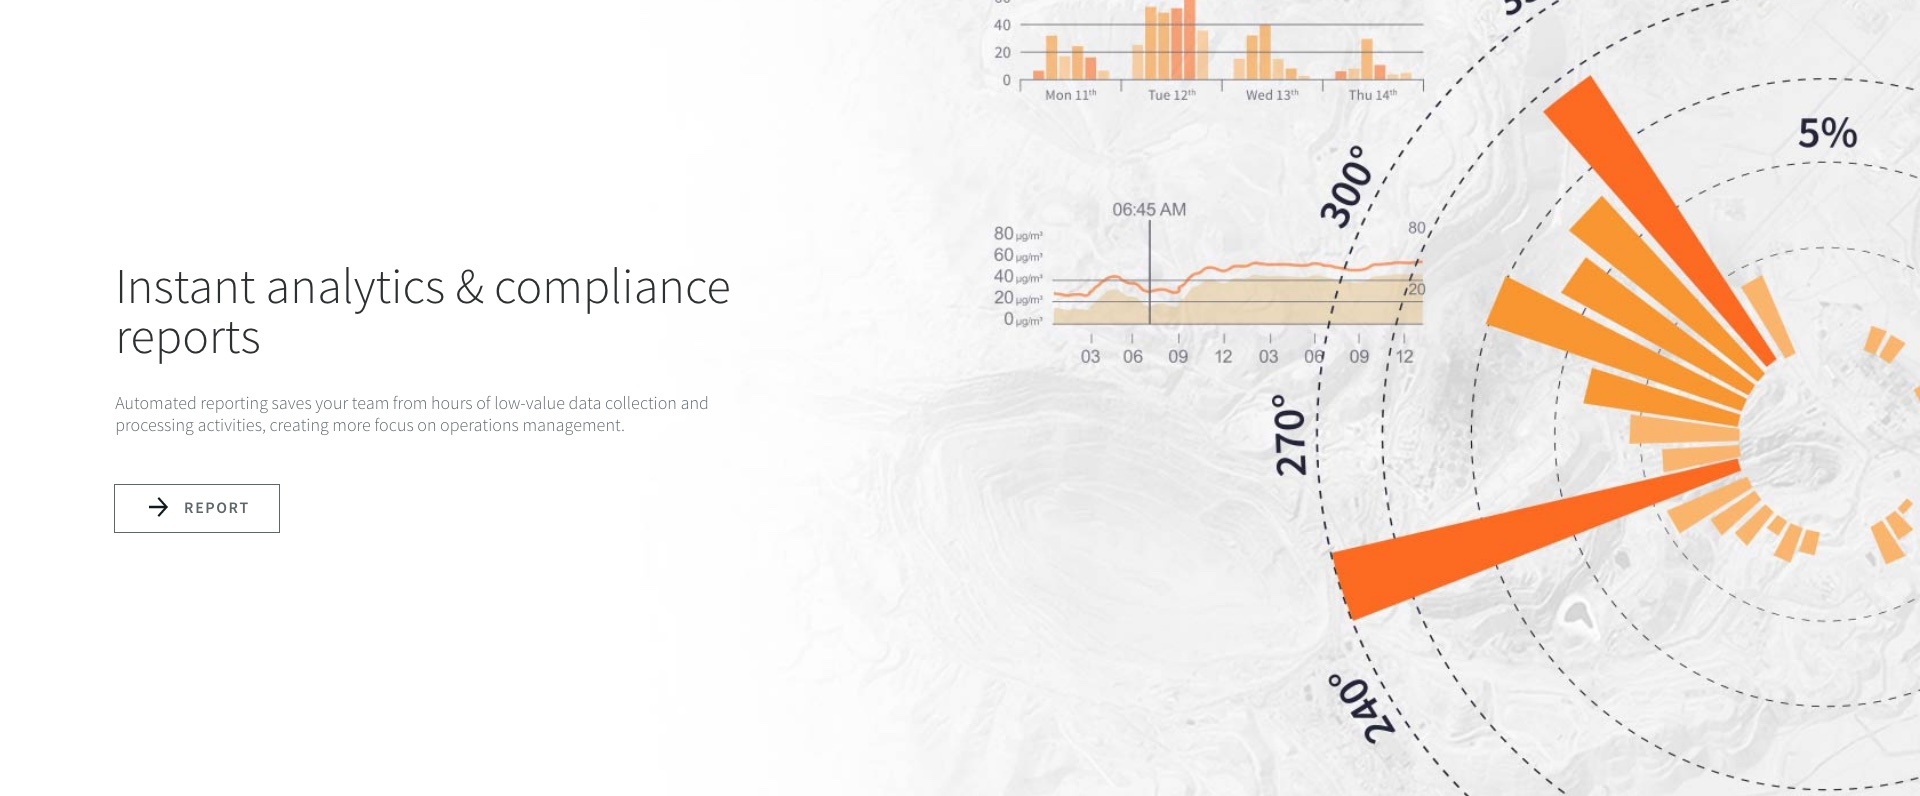 Instant analytics & compliance reports